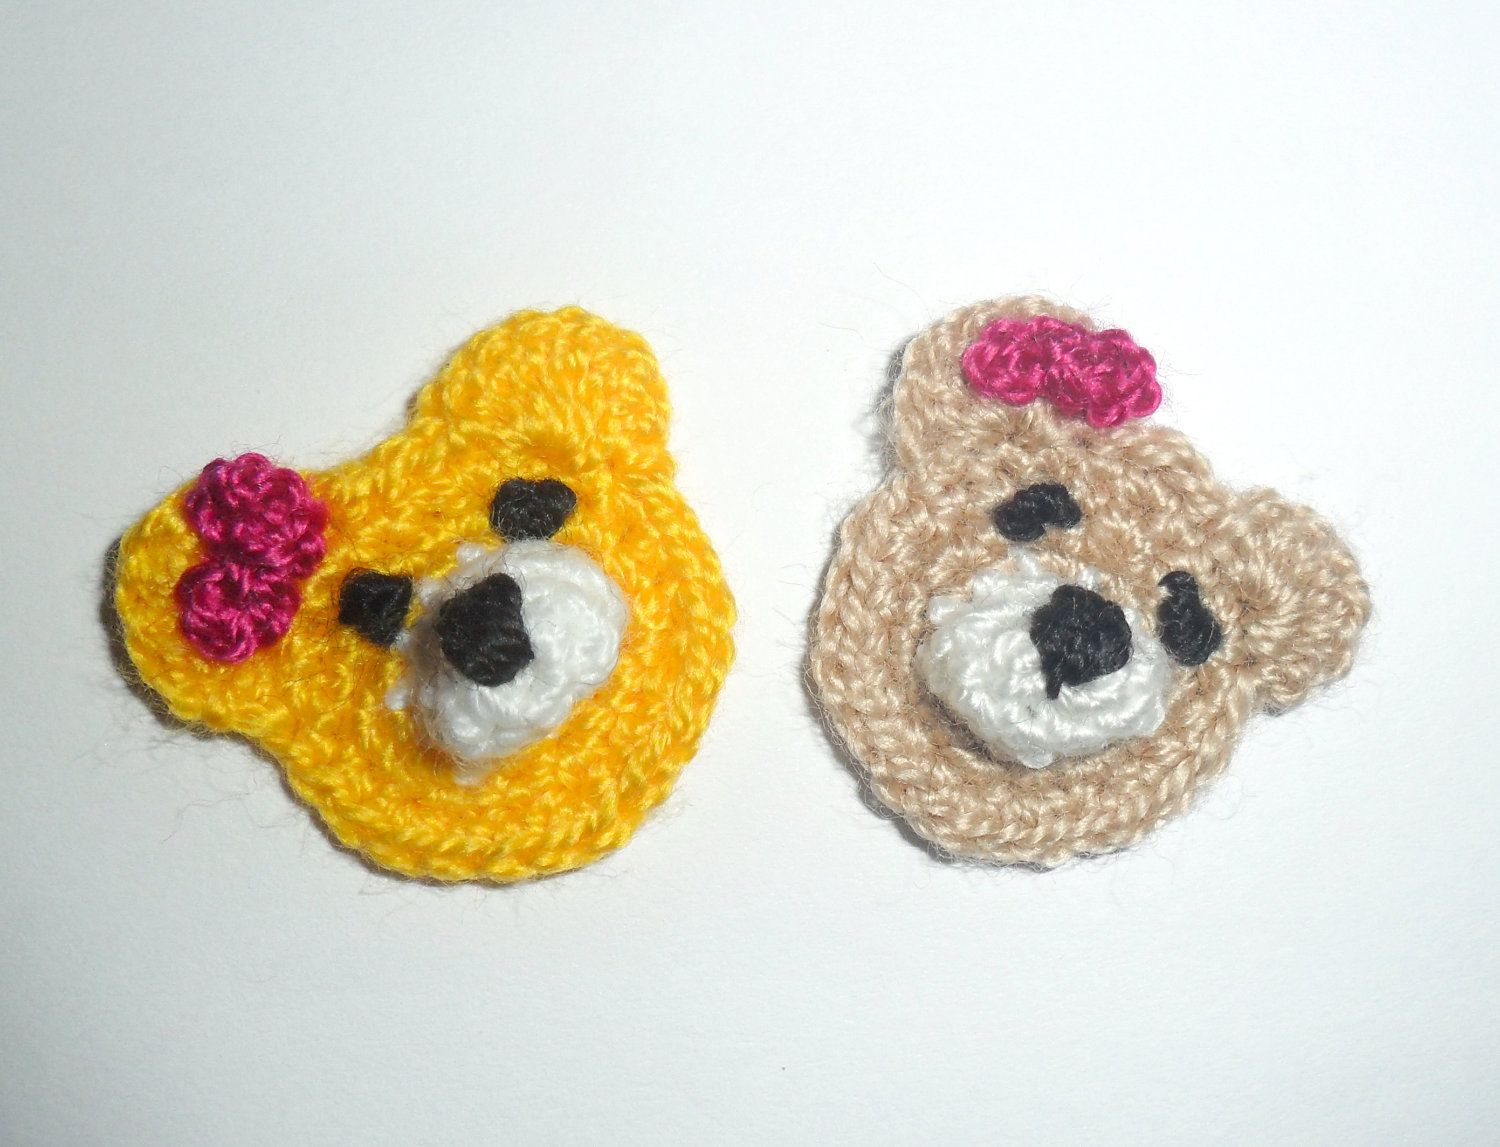 Crochet Applique Small Bears 6pcs Supplies For Clothing - Sale ...